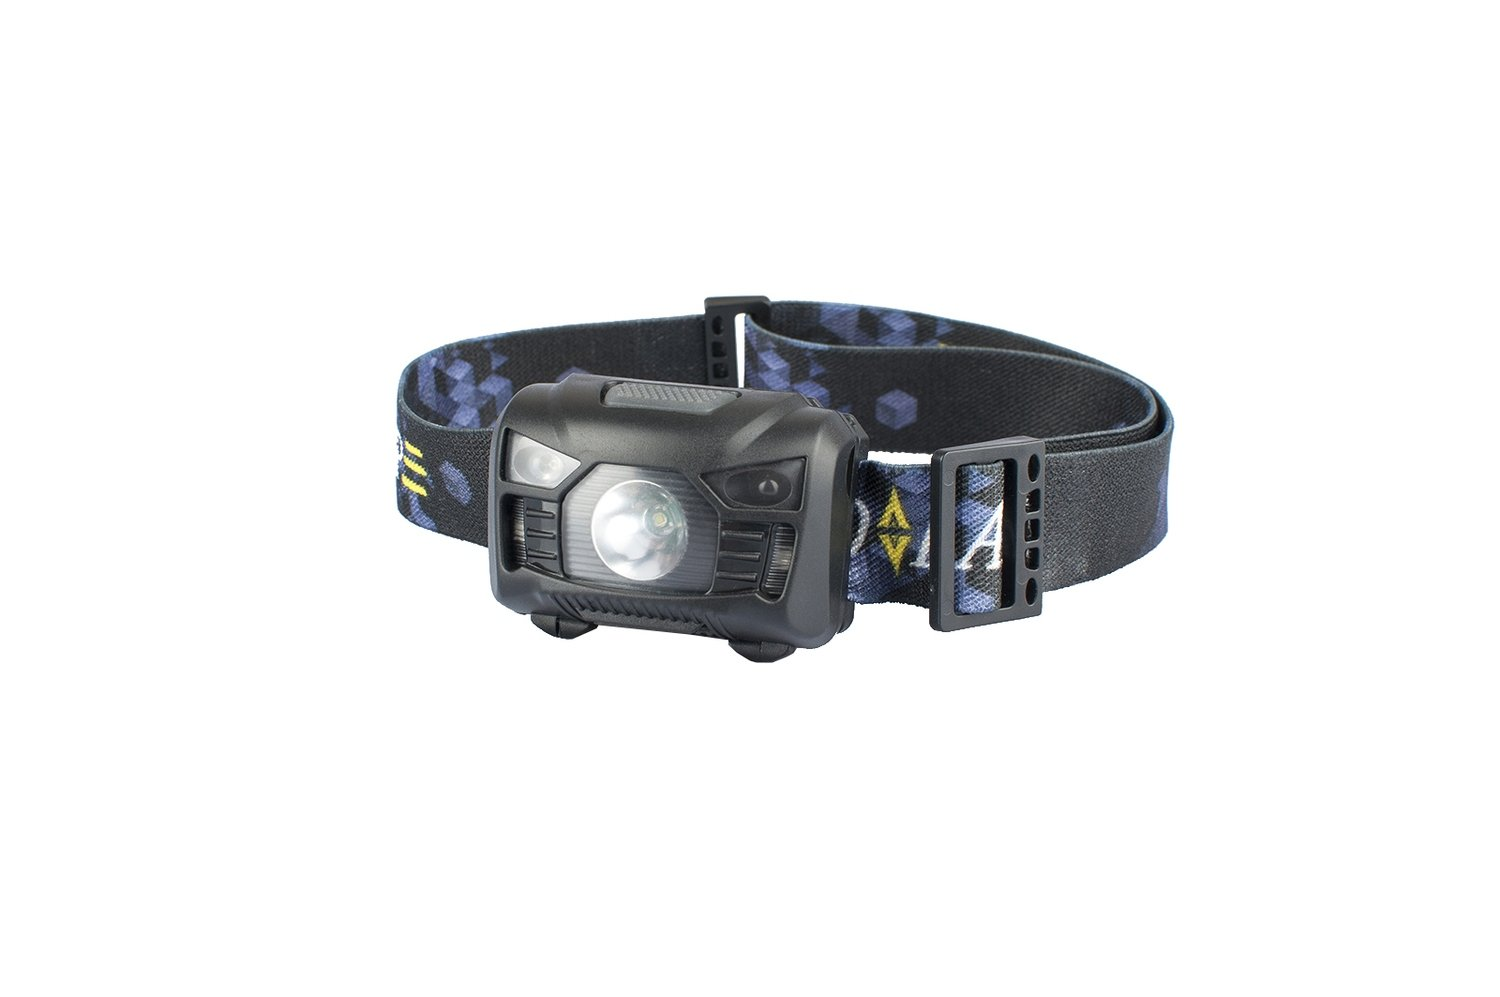 UGO97 260 Lumen head torch usb charging